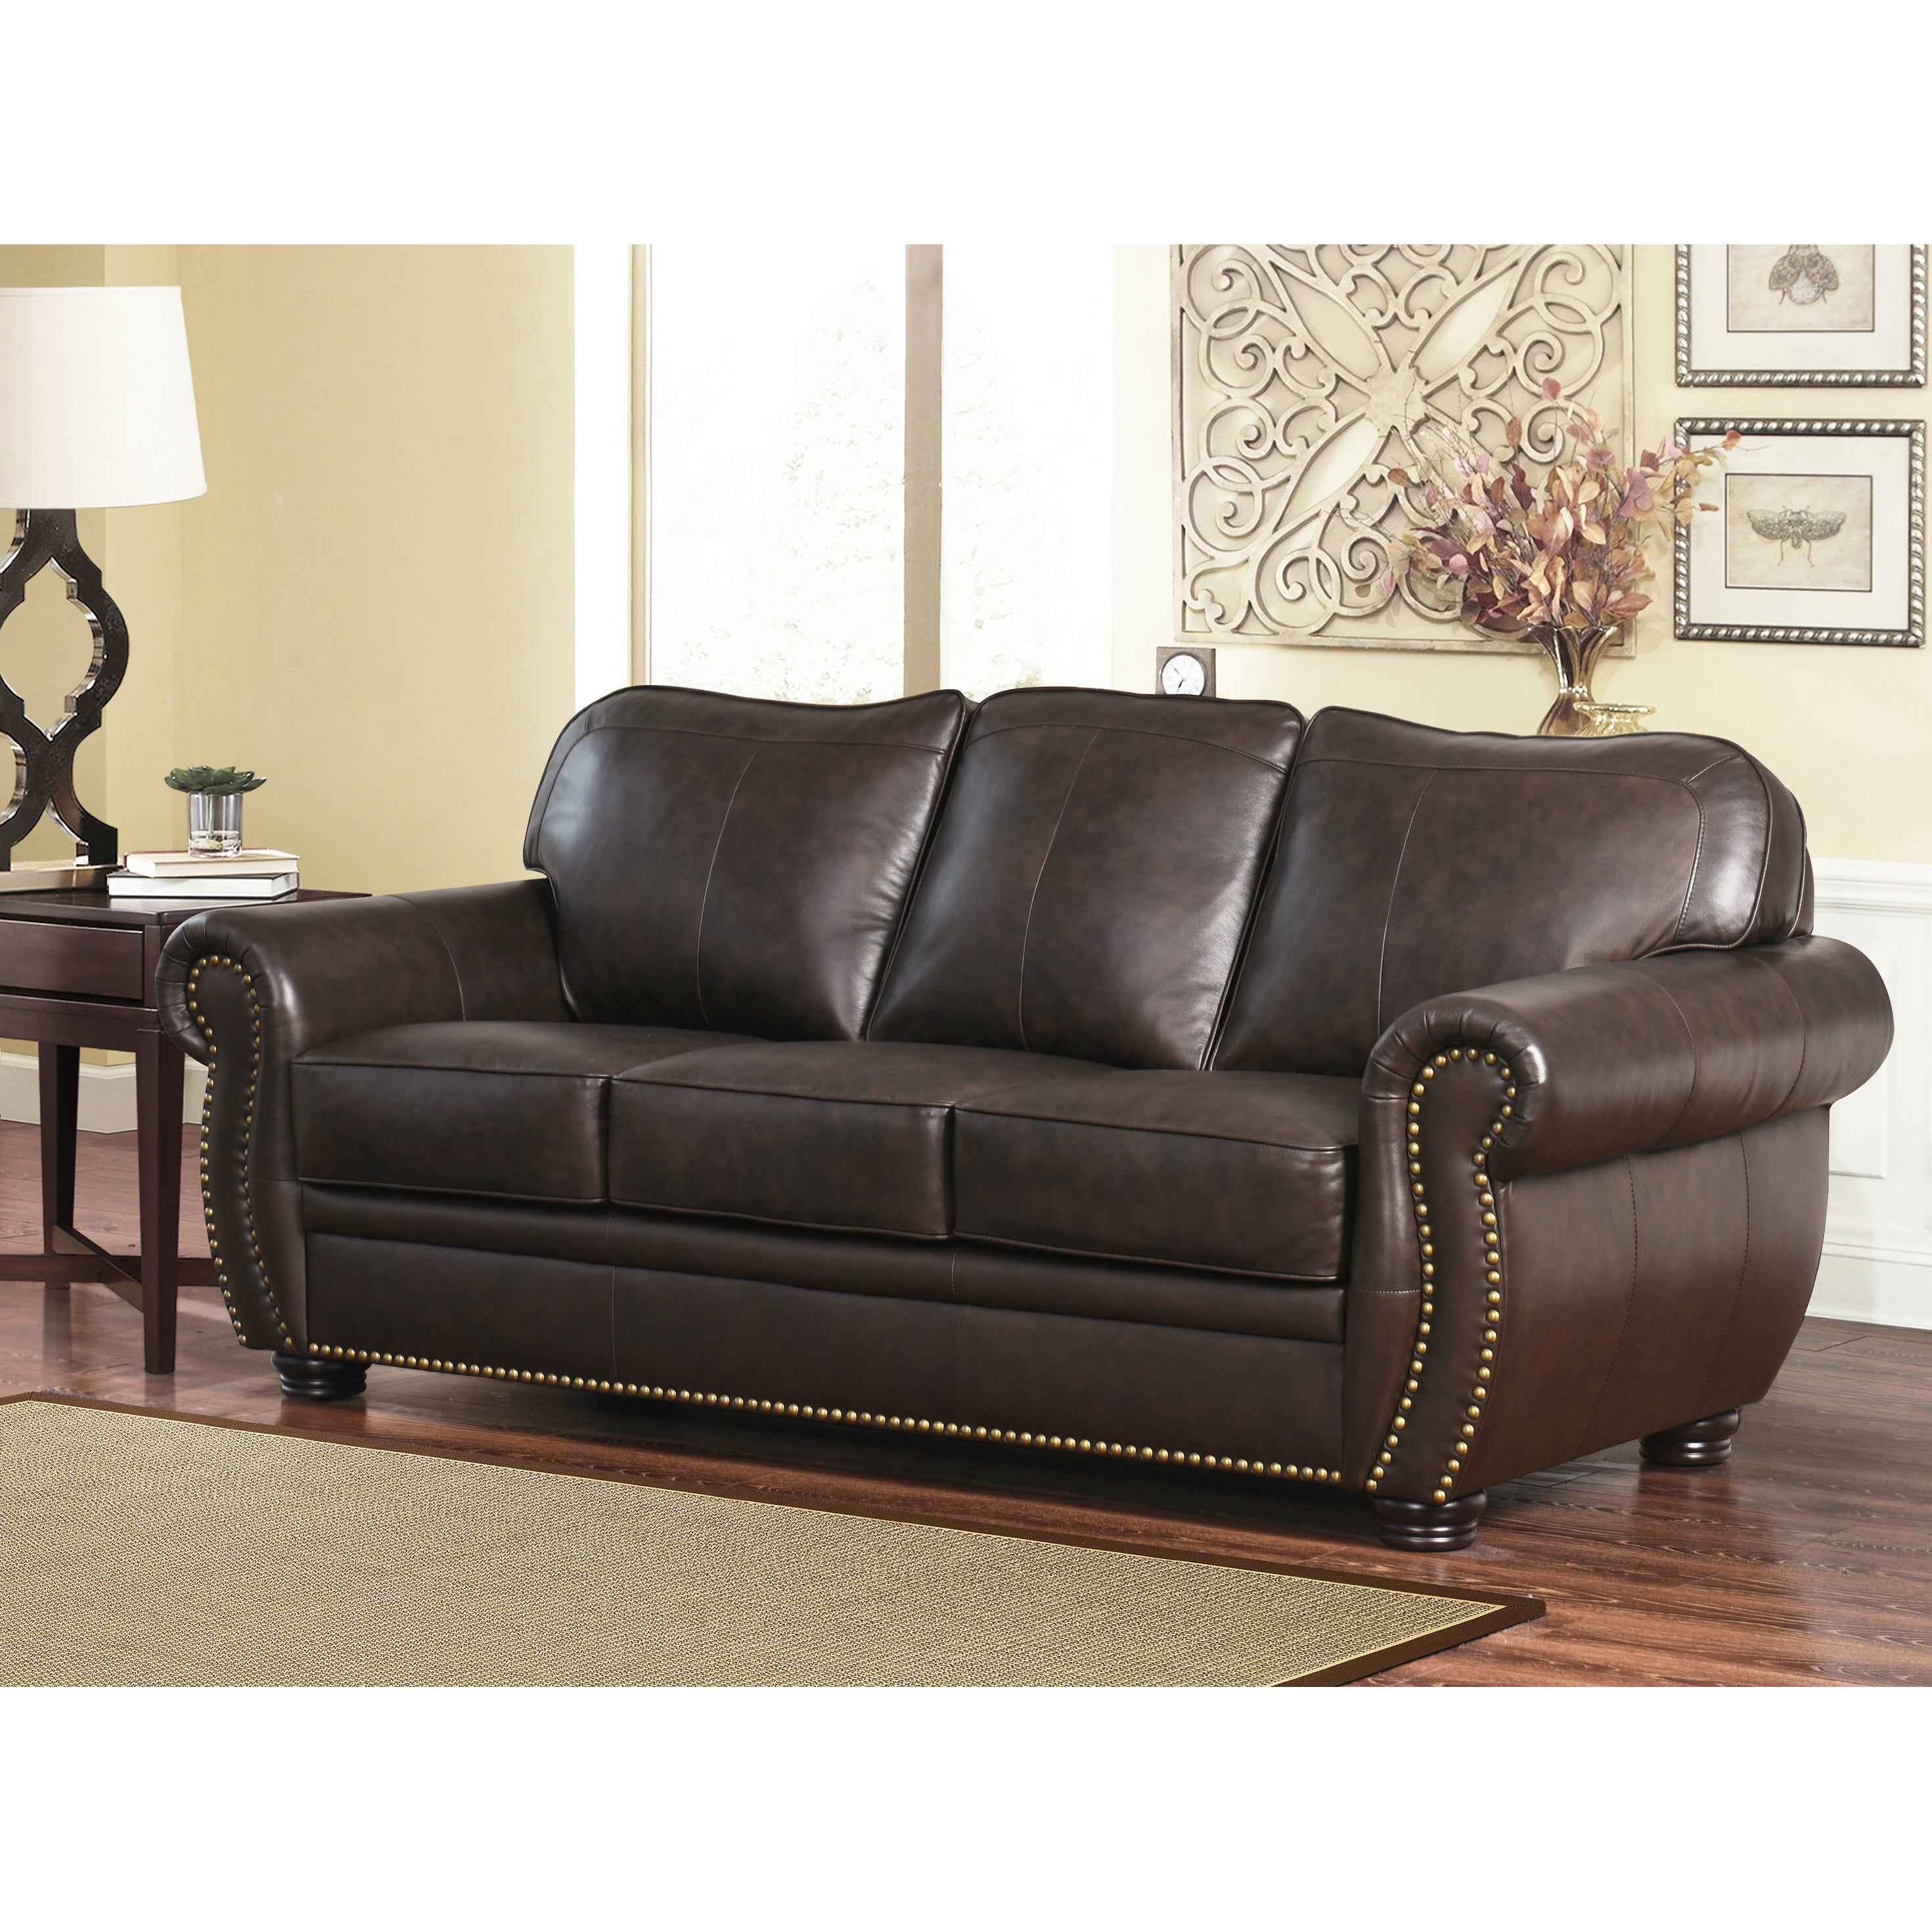 Abbyson Richfield Top Grain Leather 2 Piece Living Room Set   Free Shipping  Today   Overstock   13651288